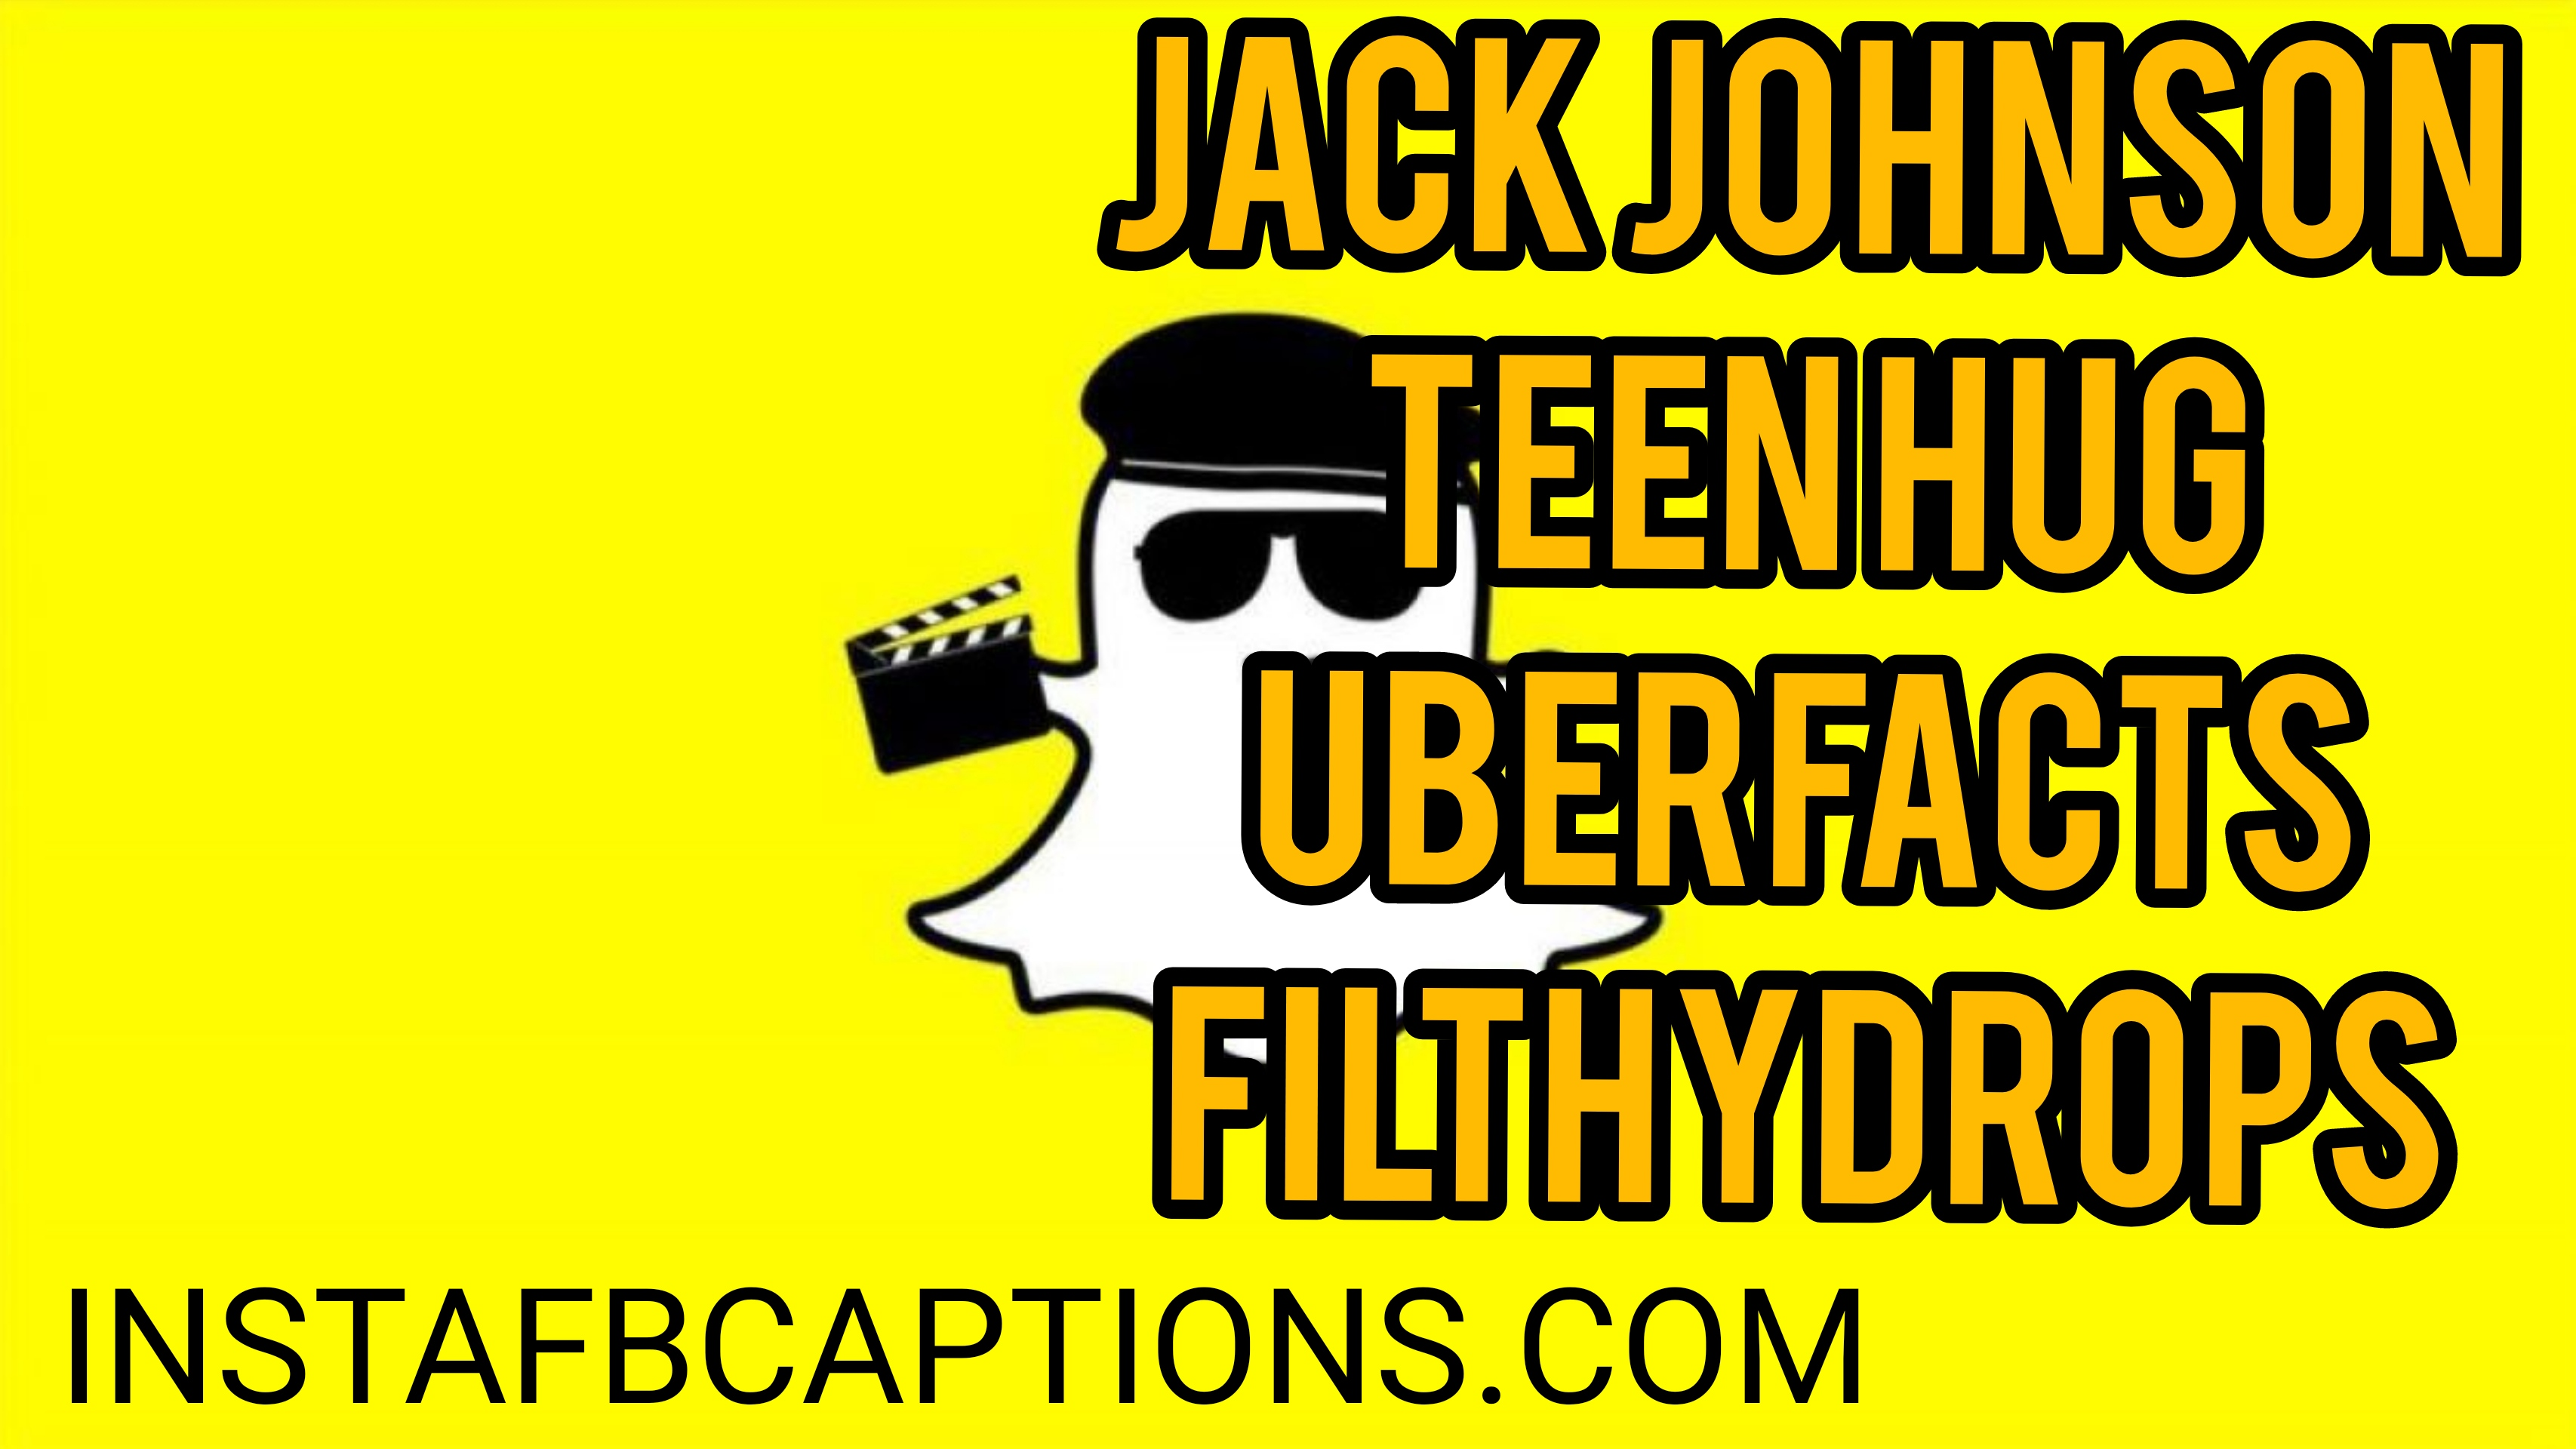 Quirky Snapchat Names  - Quirky Snapchat names - 750+ Best SNAPCHAT NAME IDEAS for Guys & Girls 2021